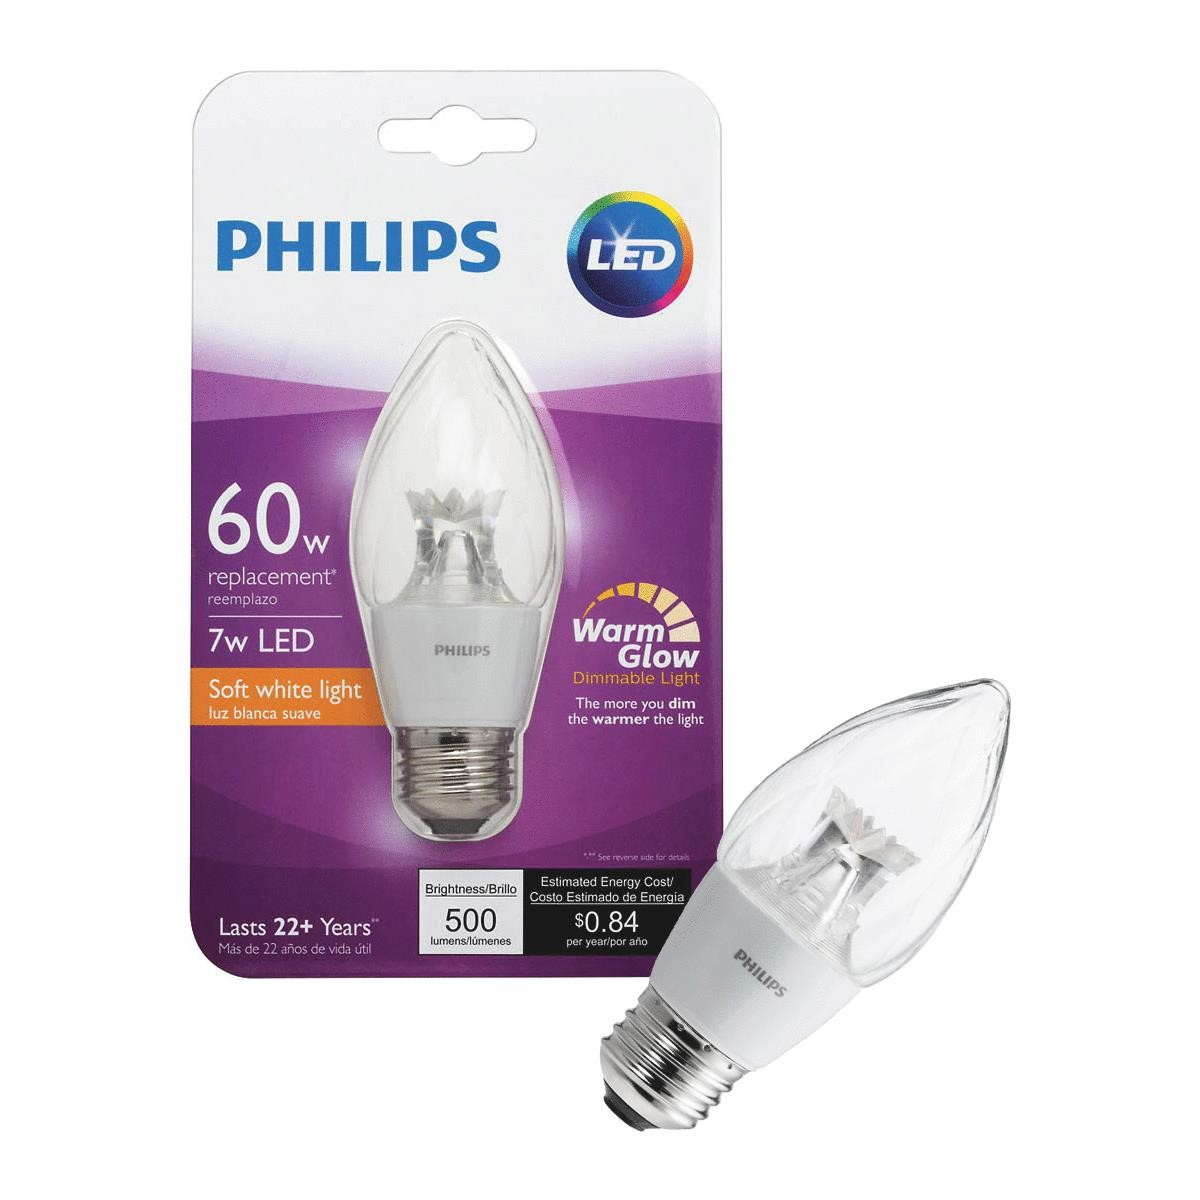 Philips LED Dimmable Candelabra Light Bulb, F15, Soft White with Warm Glow, 60 WE, Medium Base